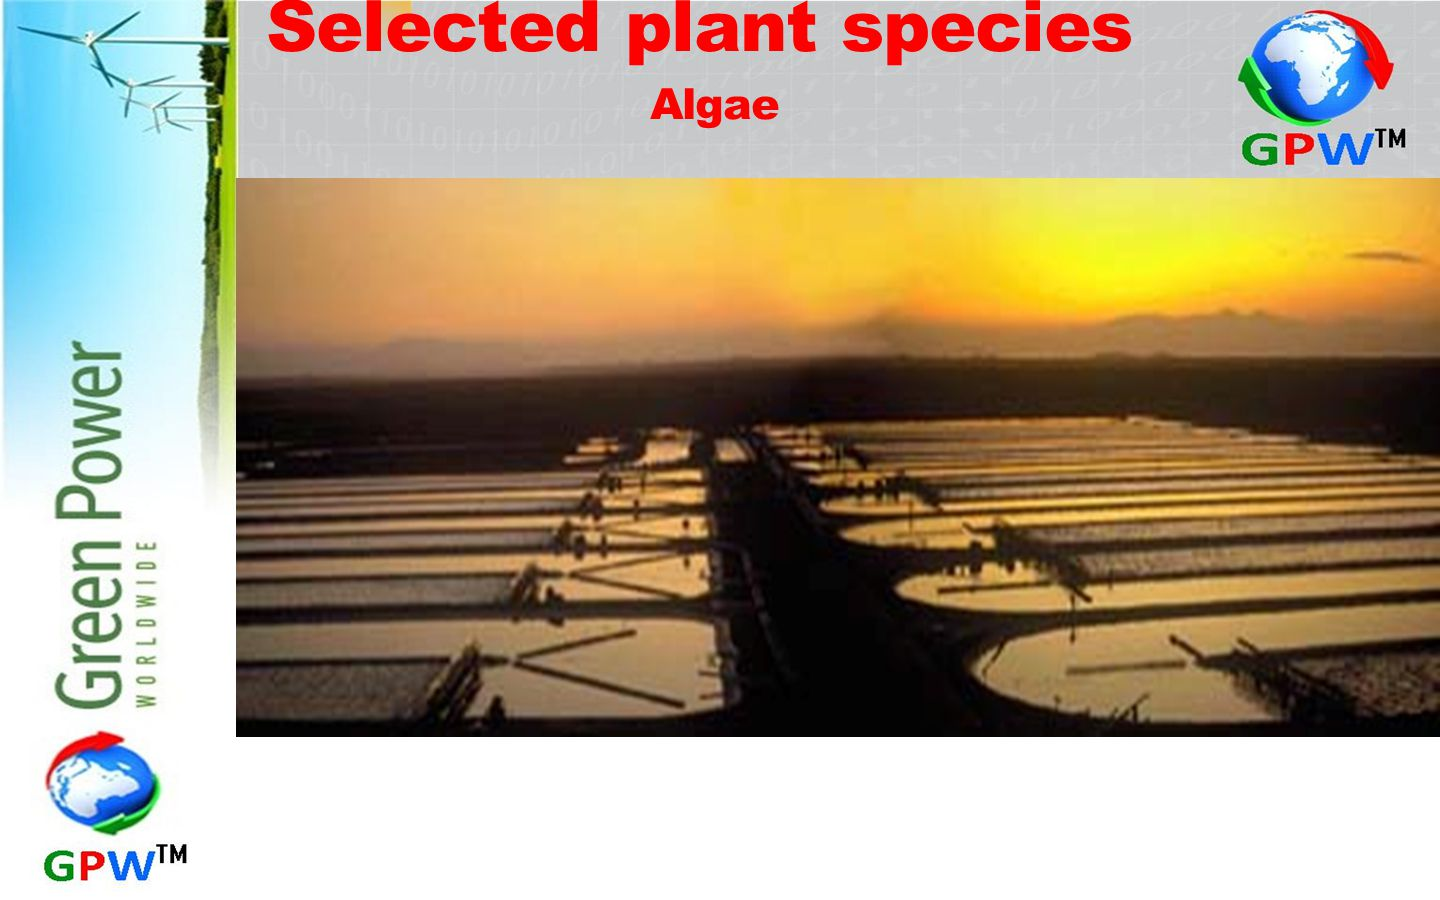 Selected plant species